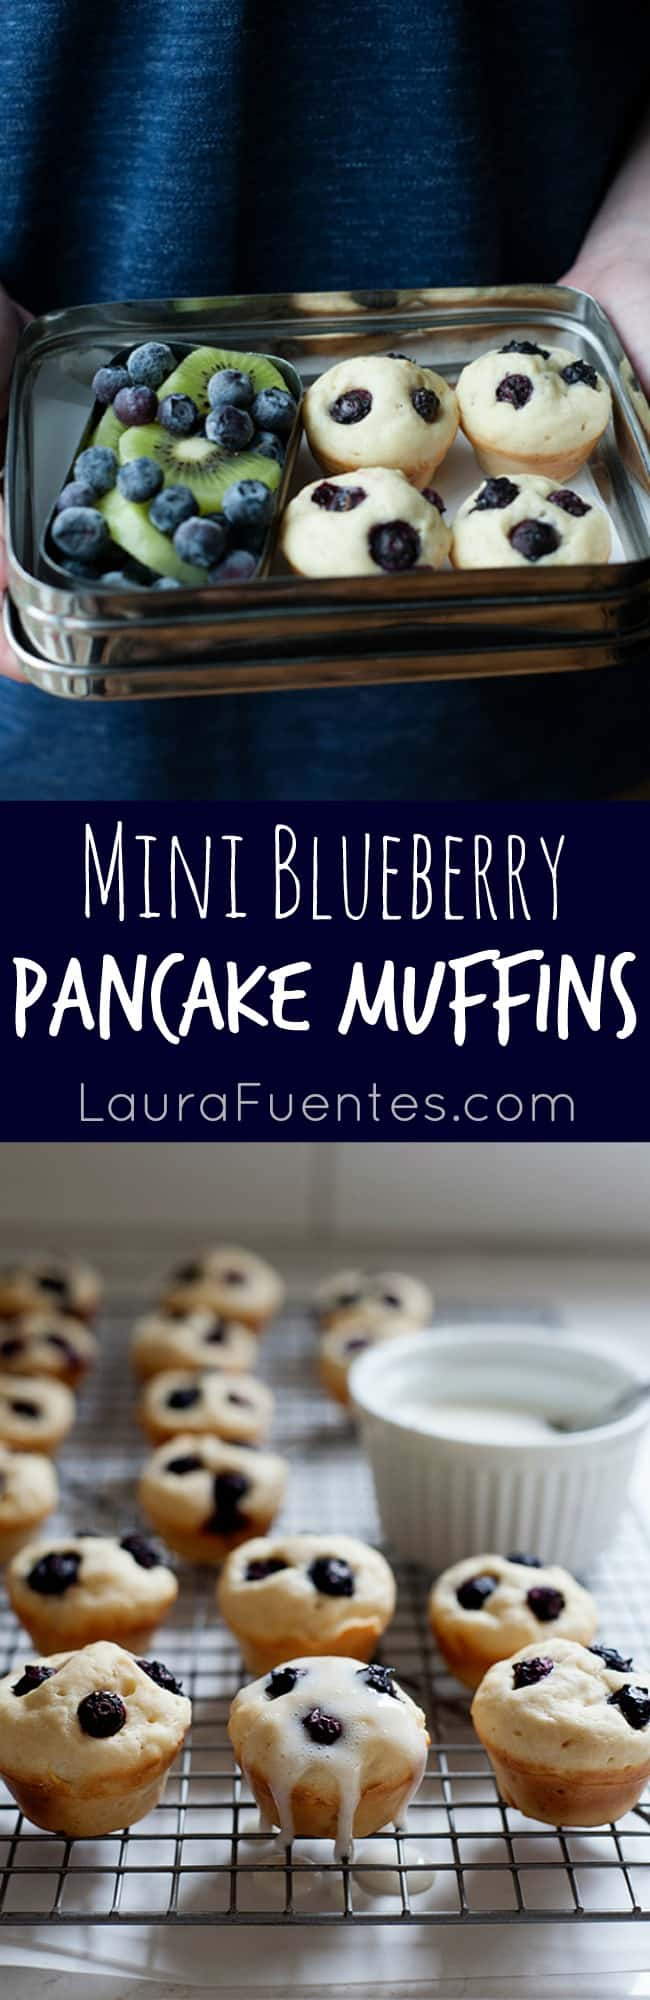 Blueberry Pancake Bites. What's better than pancakes? Bite sized mini pancakes that are full of blueberries in every bite!